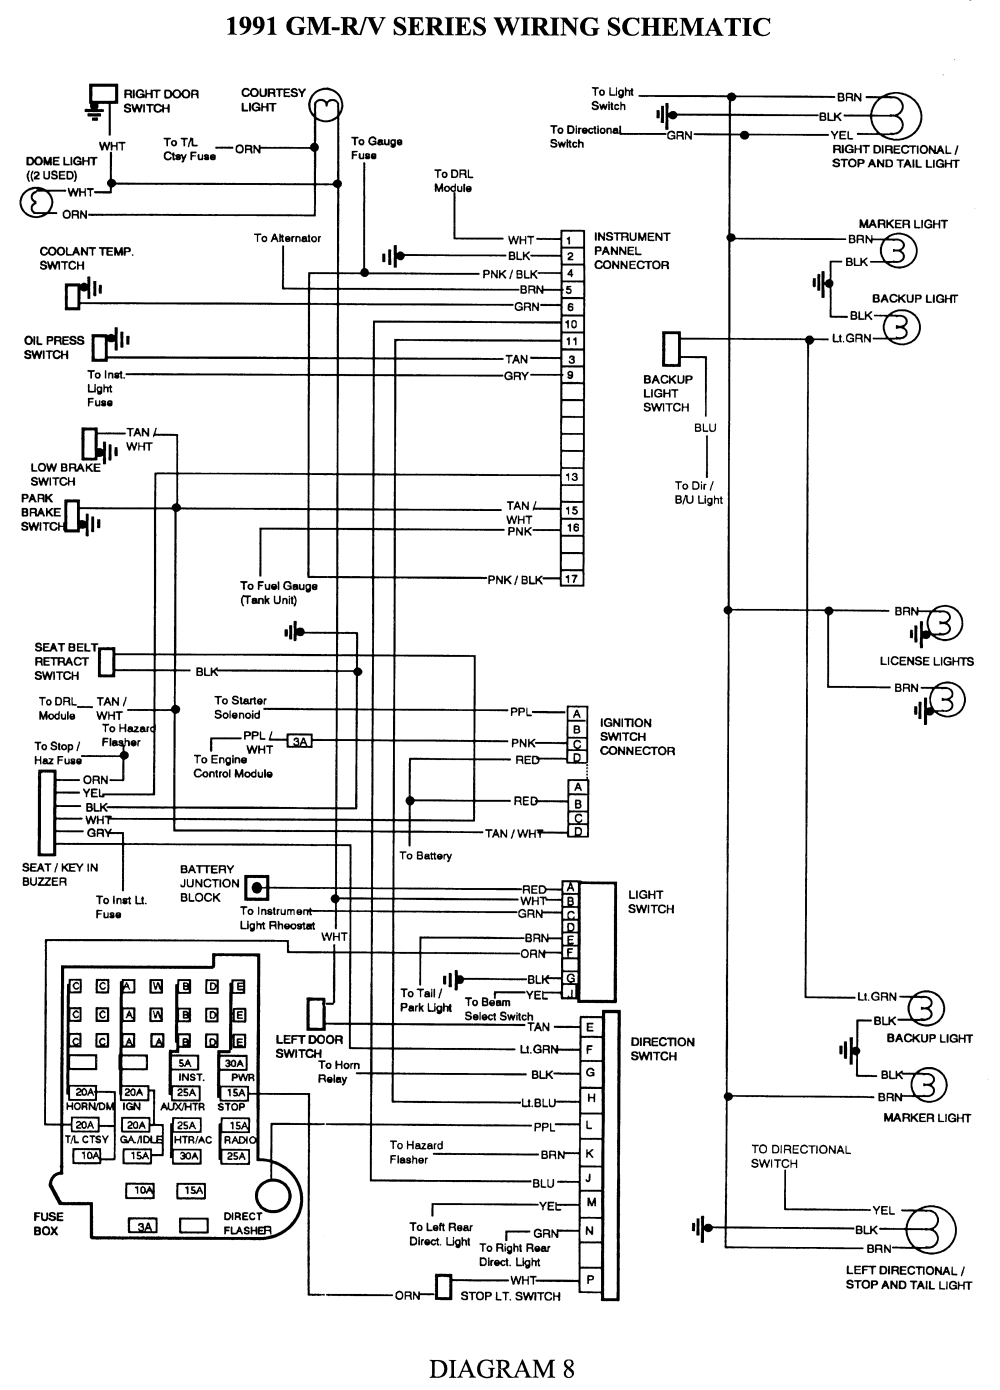 Diagram 1996 Blazer Wiring Diagram Full Version Hd Quality Wiring Diagram Pdaschematics2b Angelux It